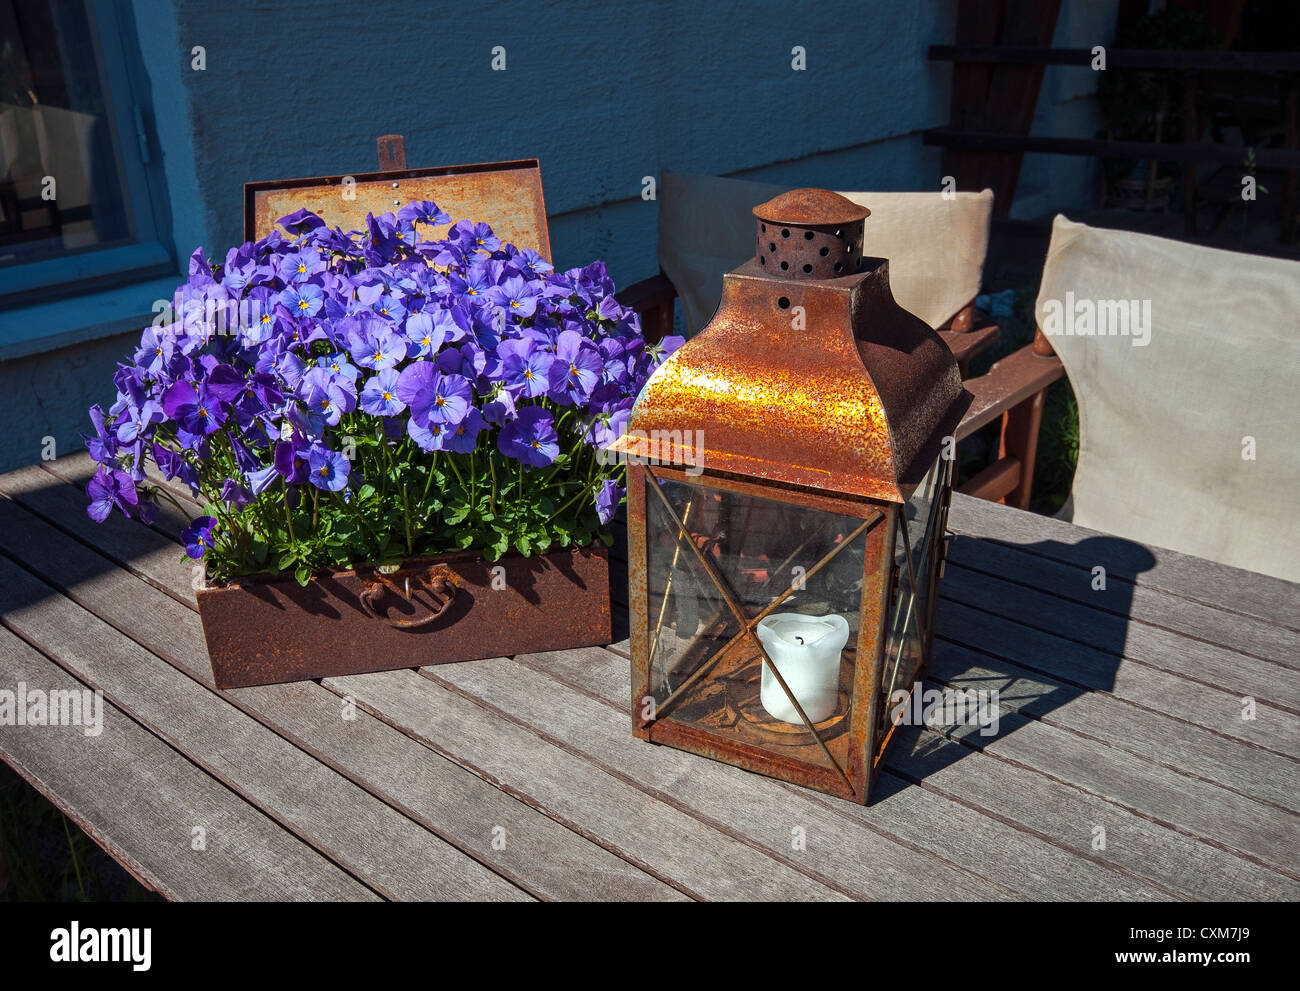 Rusty chest with purple flowers and lamp on wooden table in 'Old Town' Helsinki, Finland Stock Photo